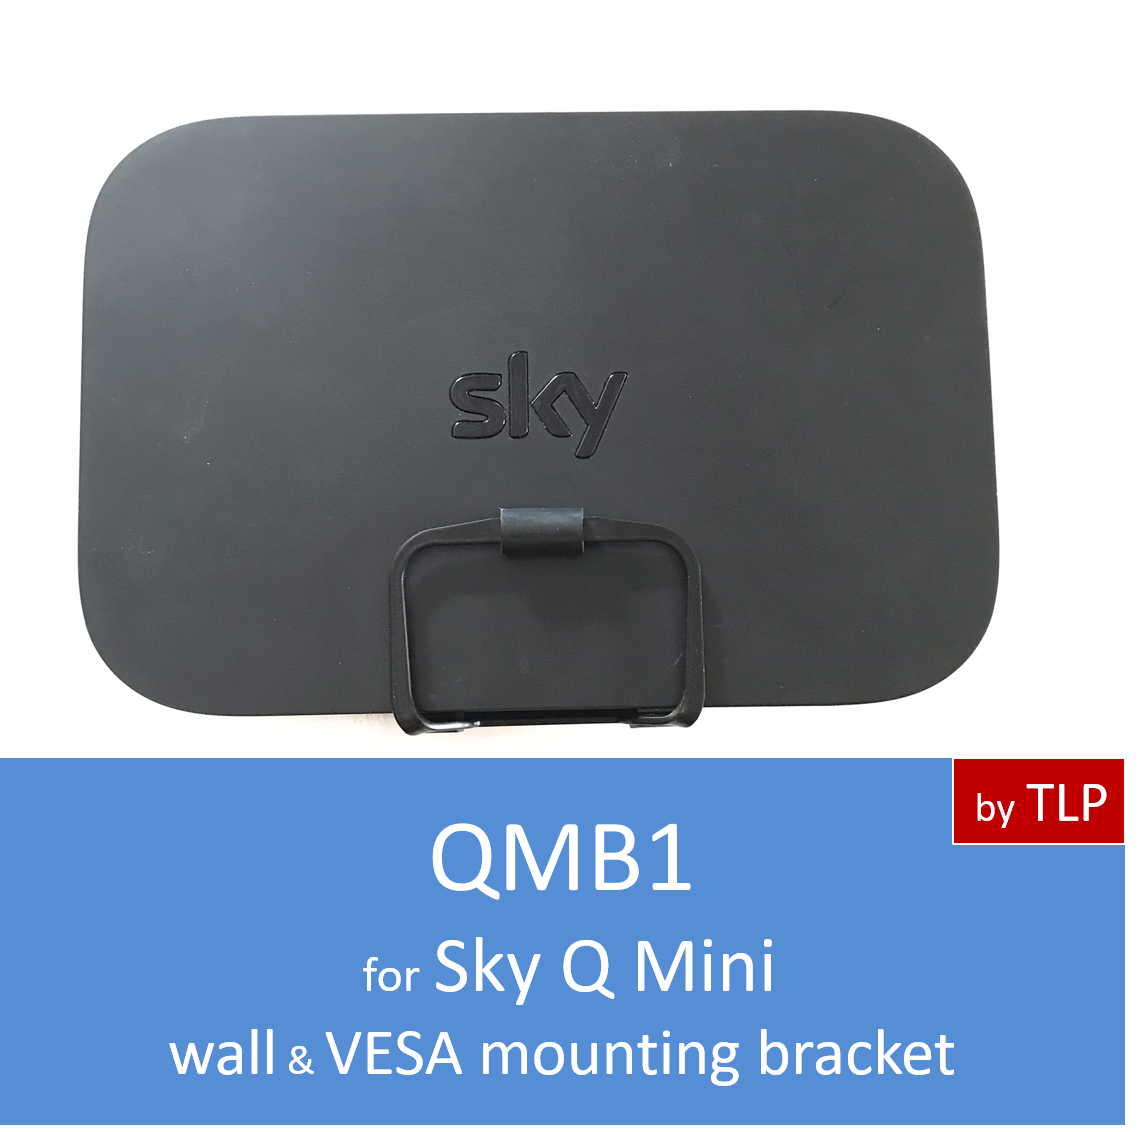 http://triplelinkproducts.co.uk/wp-content/uploads/2018/07/QMB1-for-Sky-Q-Mini.png